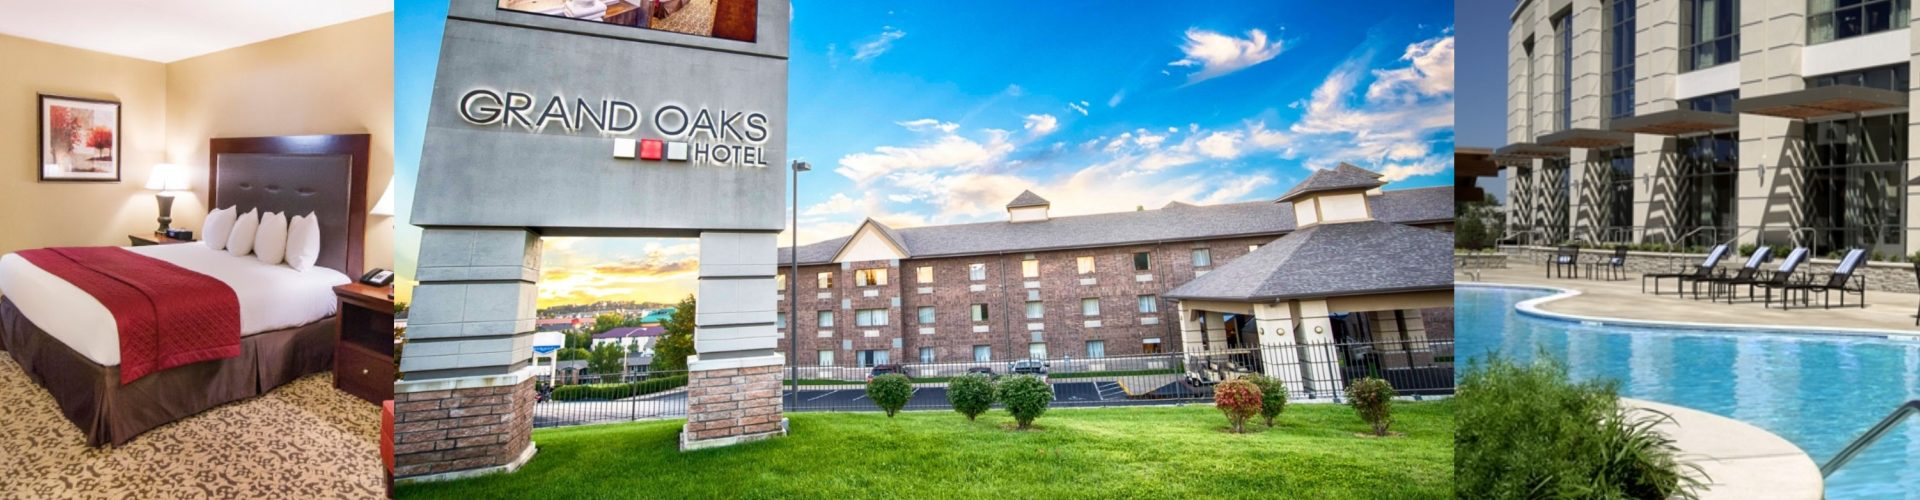 Hotels & Motels in Branson, Missouri